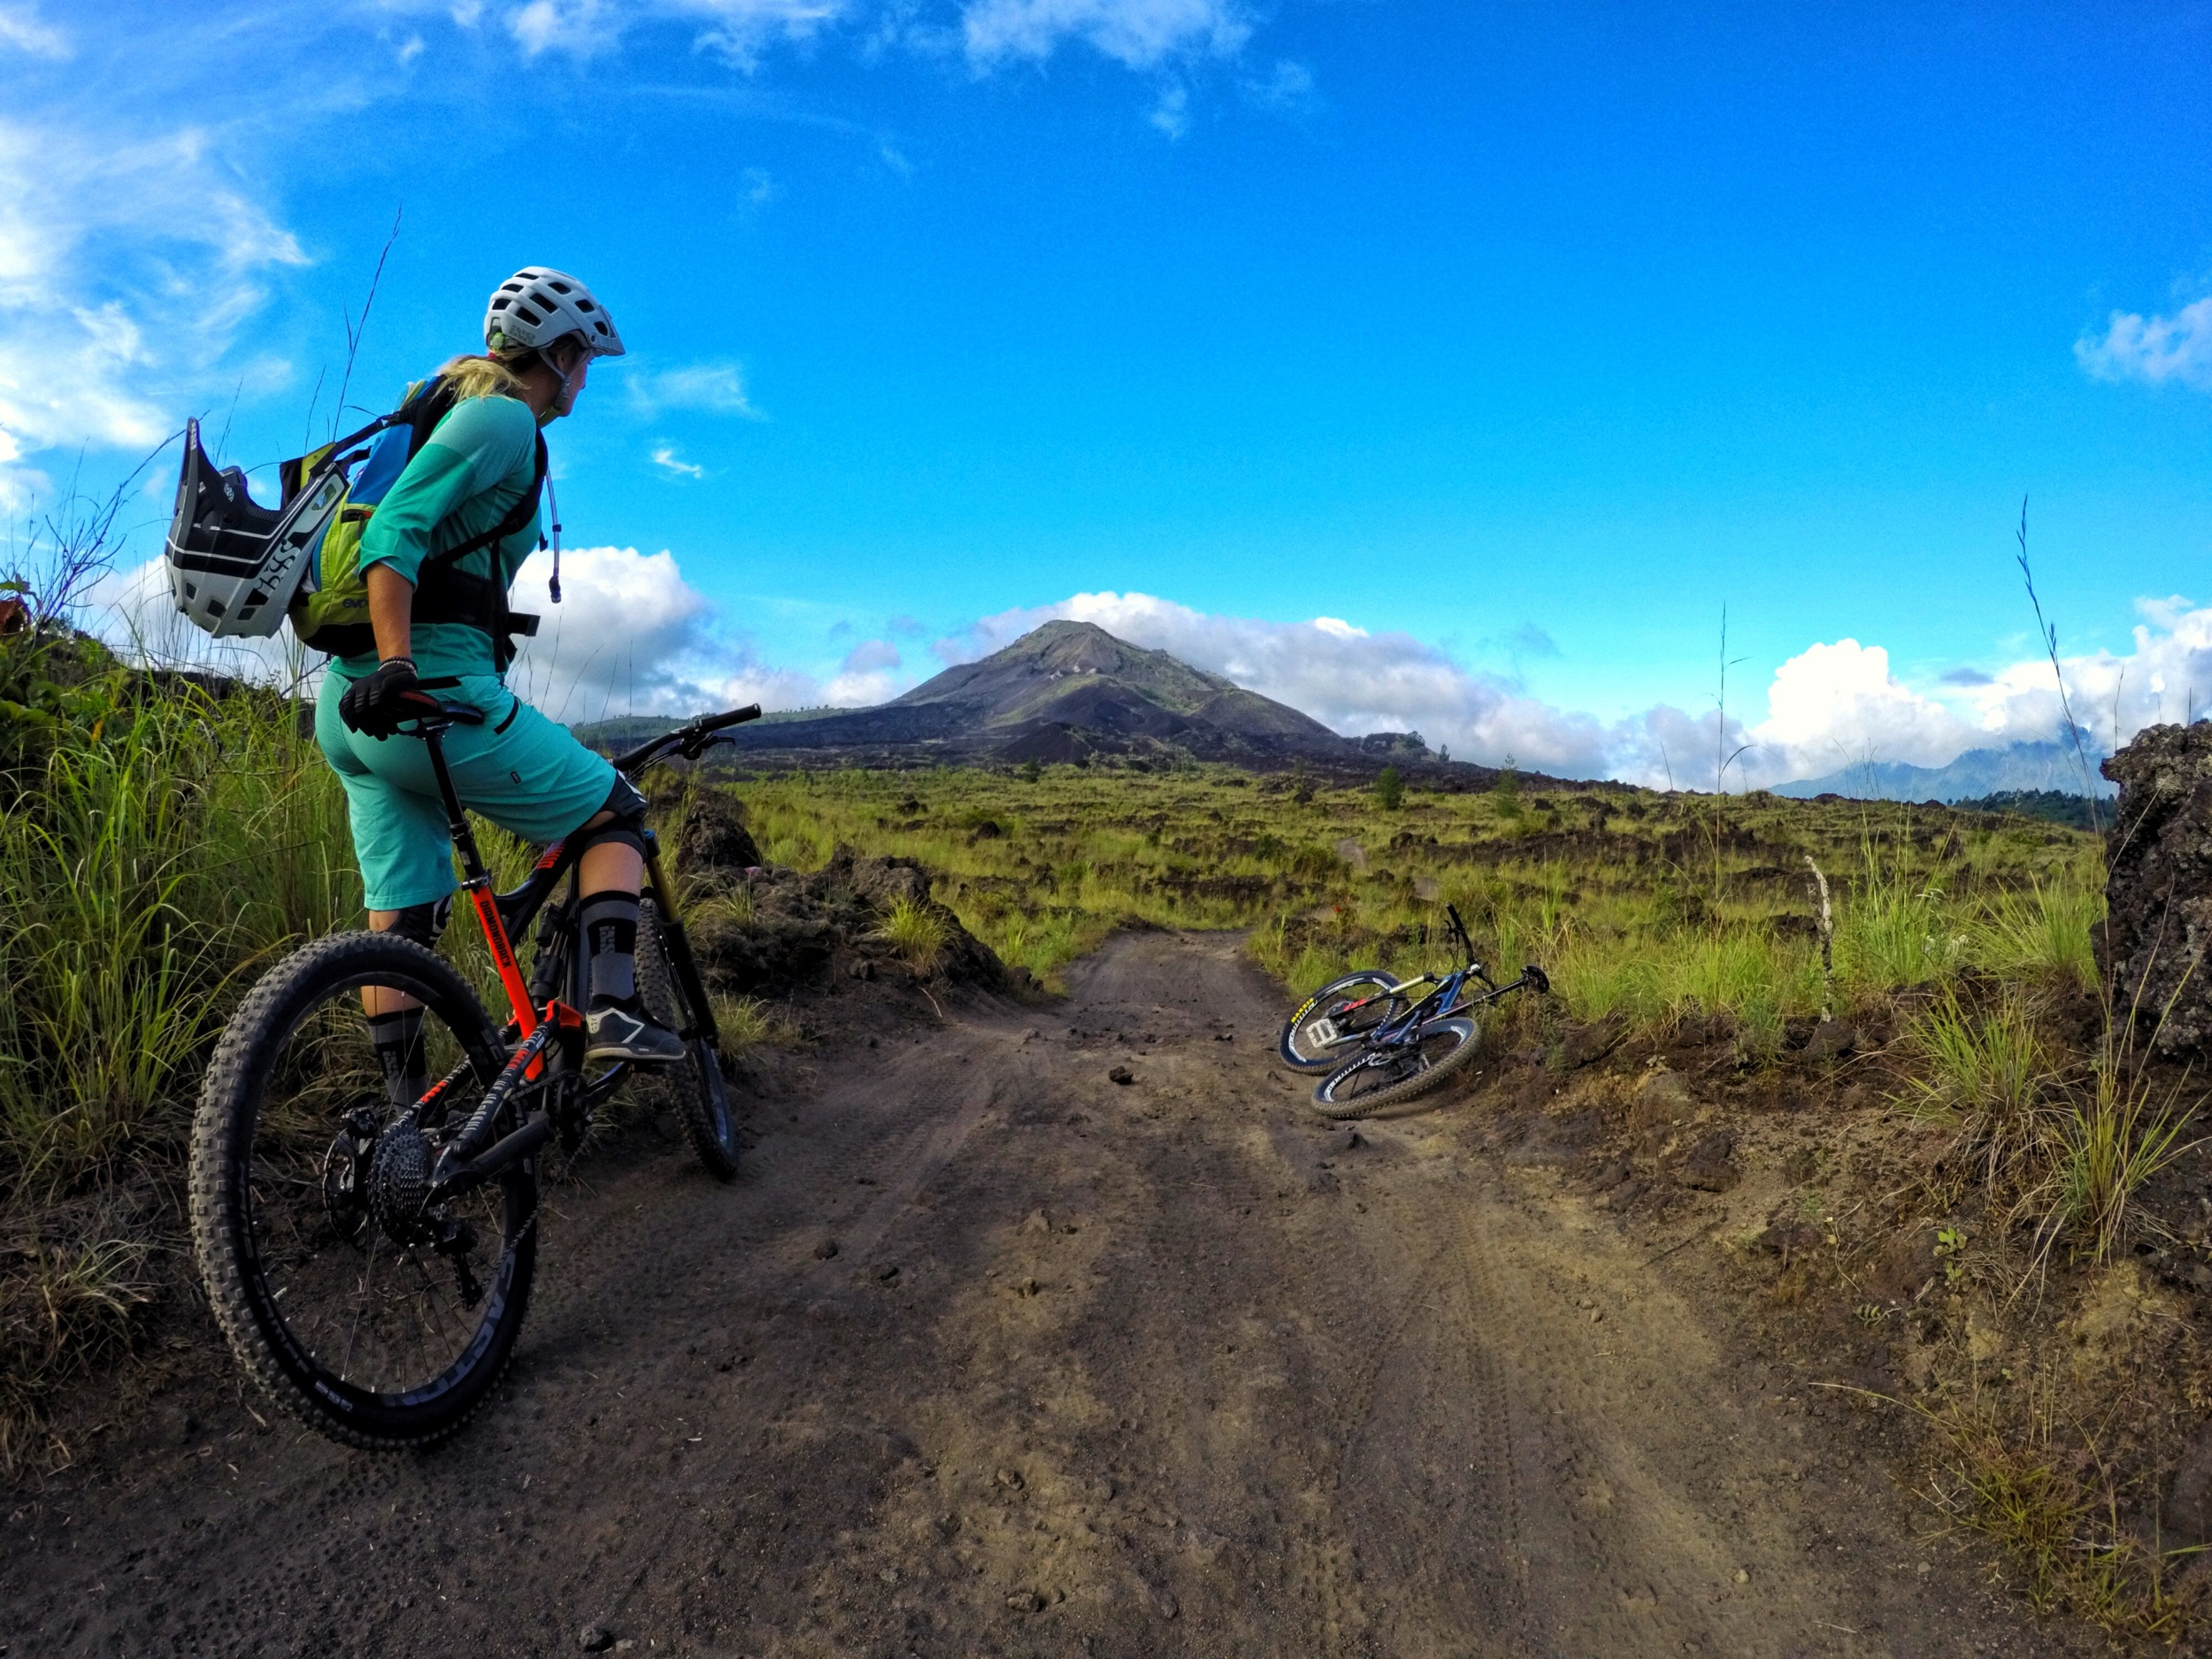 Riding on the black sand dunes at the base of the Batur volcano was so different than anything I'd ever ridden before, but just as fun.